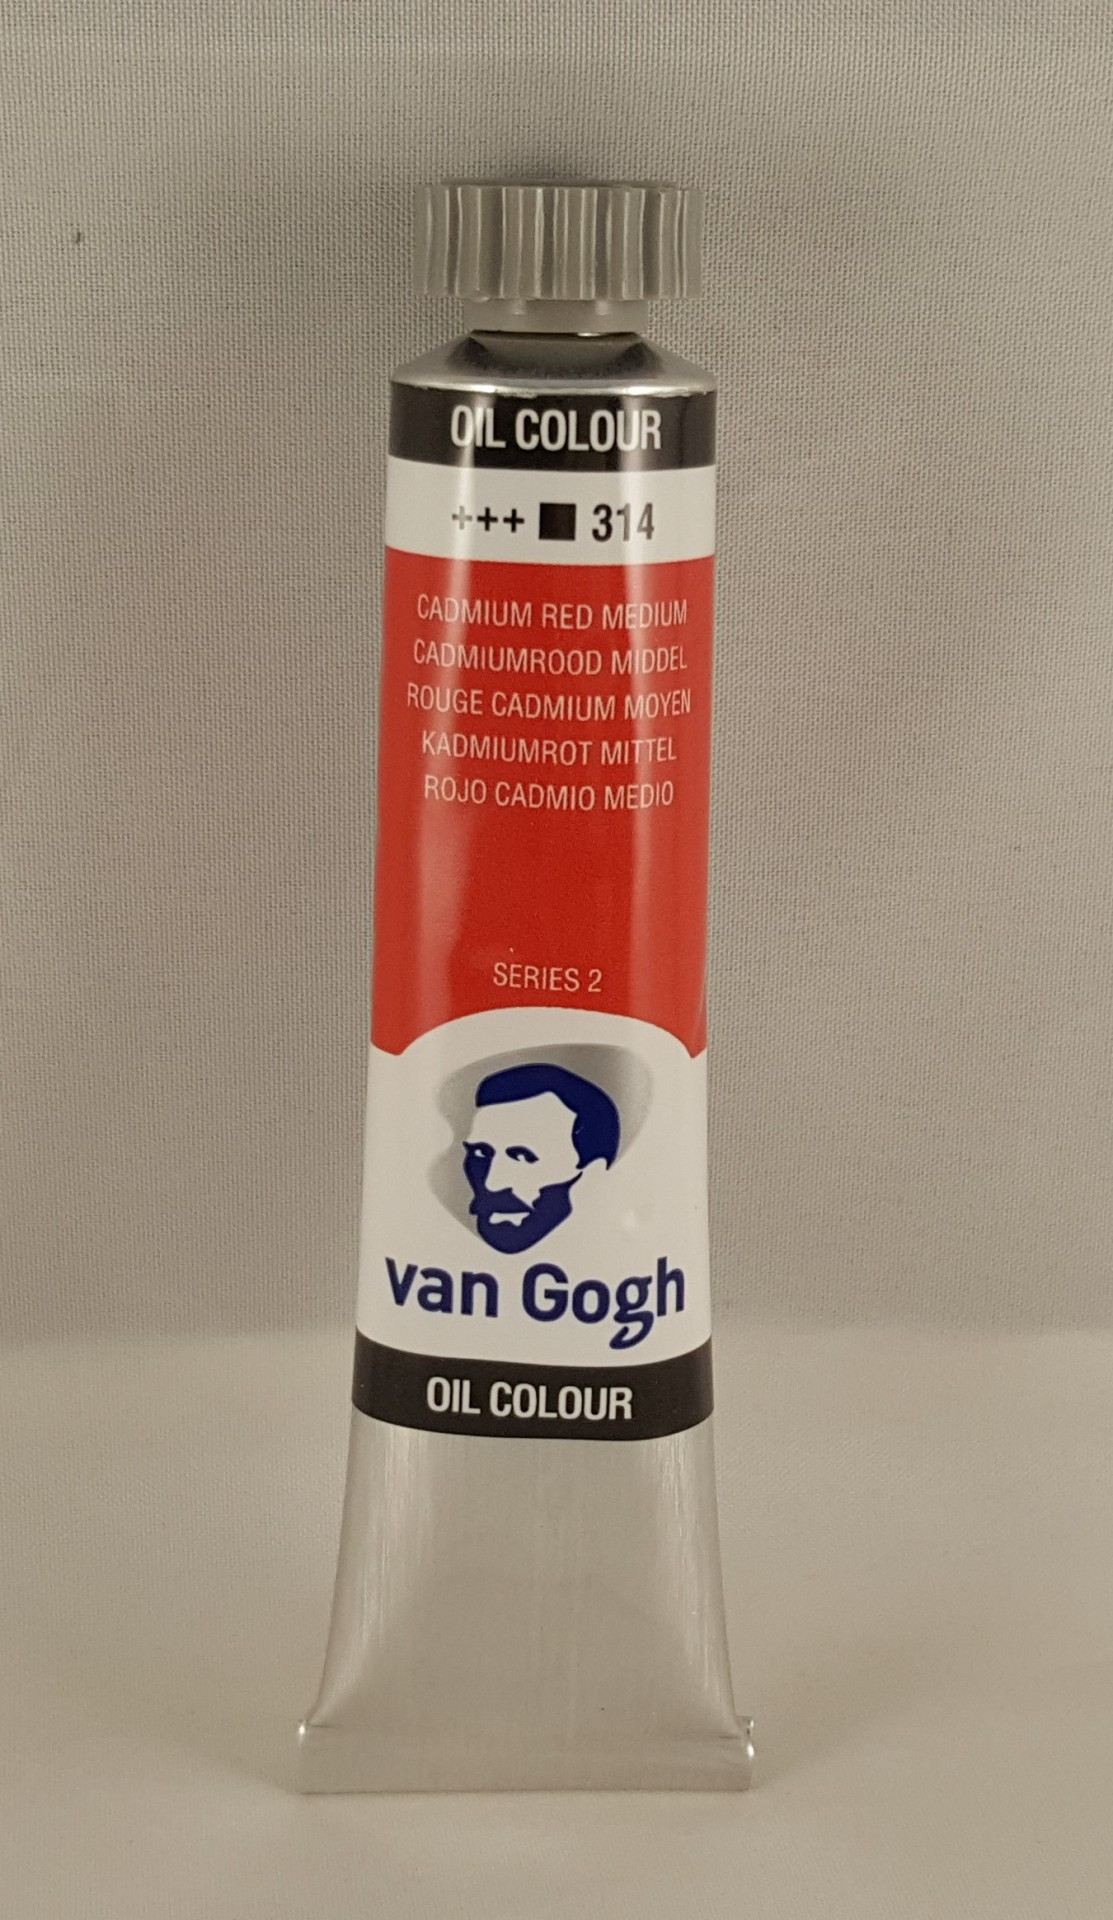 Tinta de óleo Van Gogh cadmium red medium